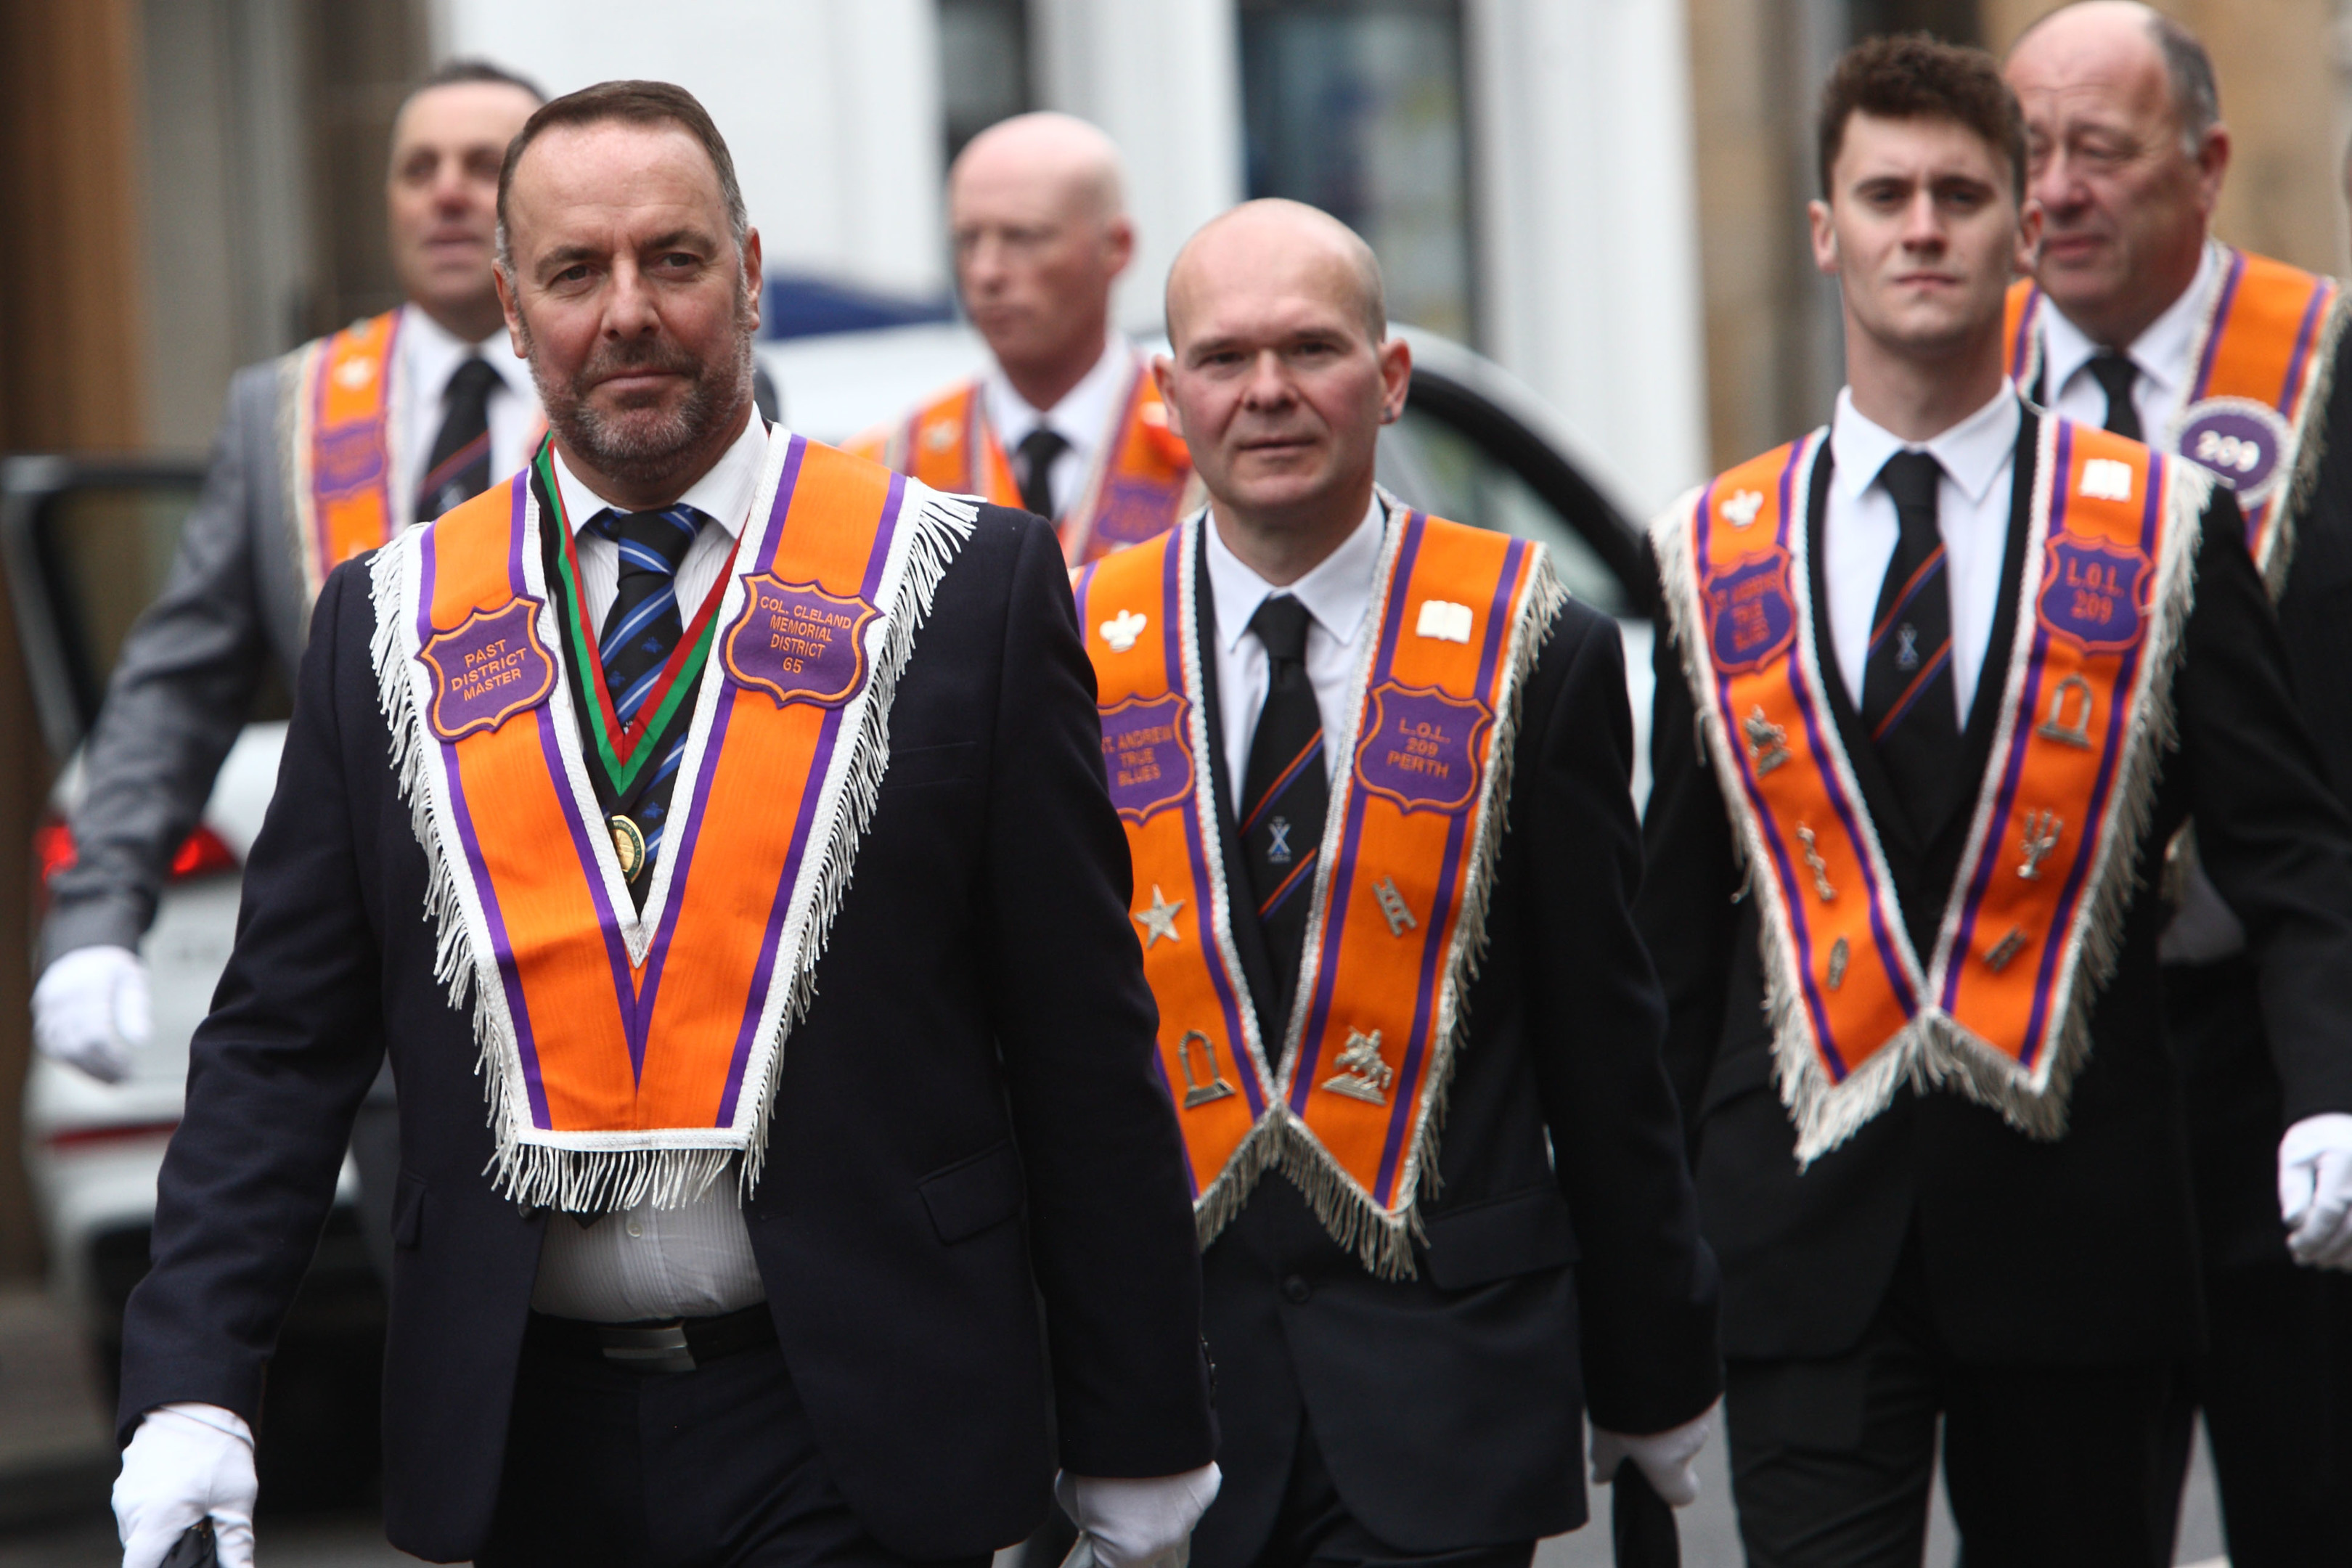 The Orange Order marched through Perth.